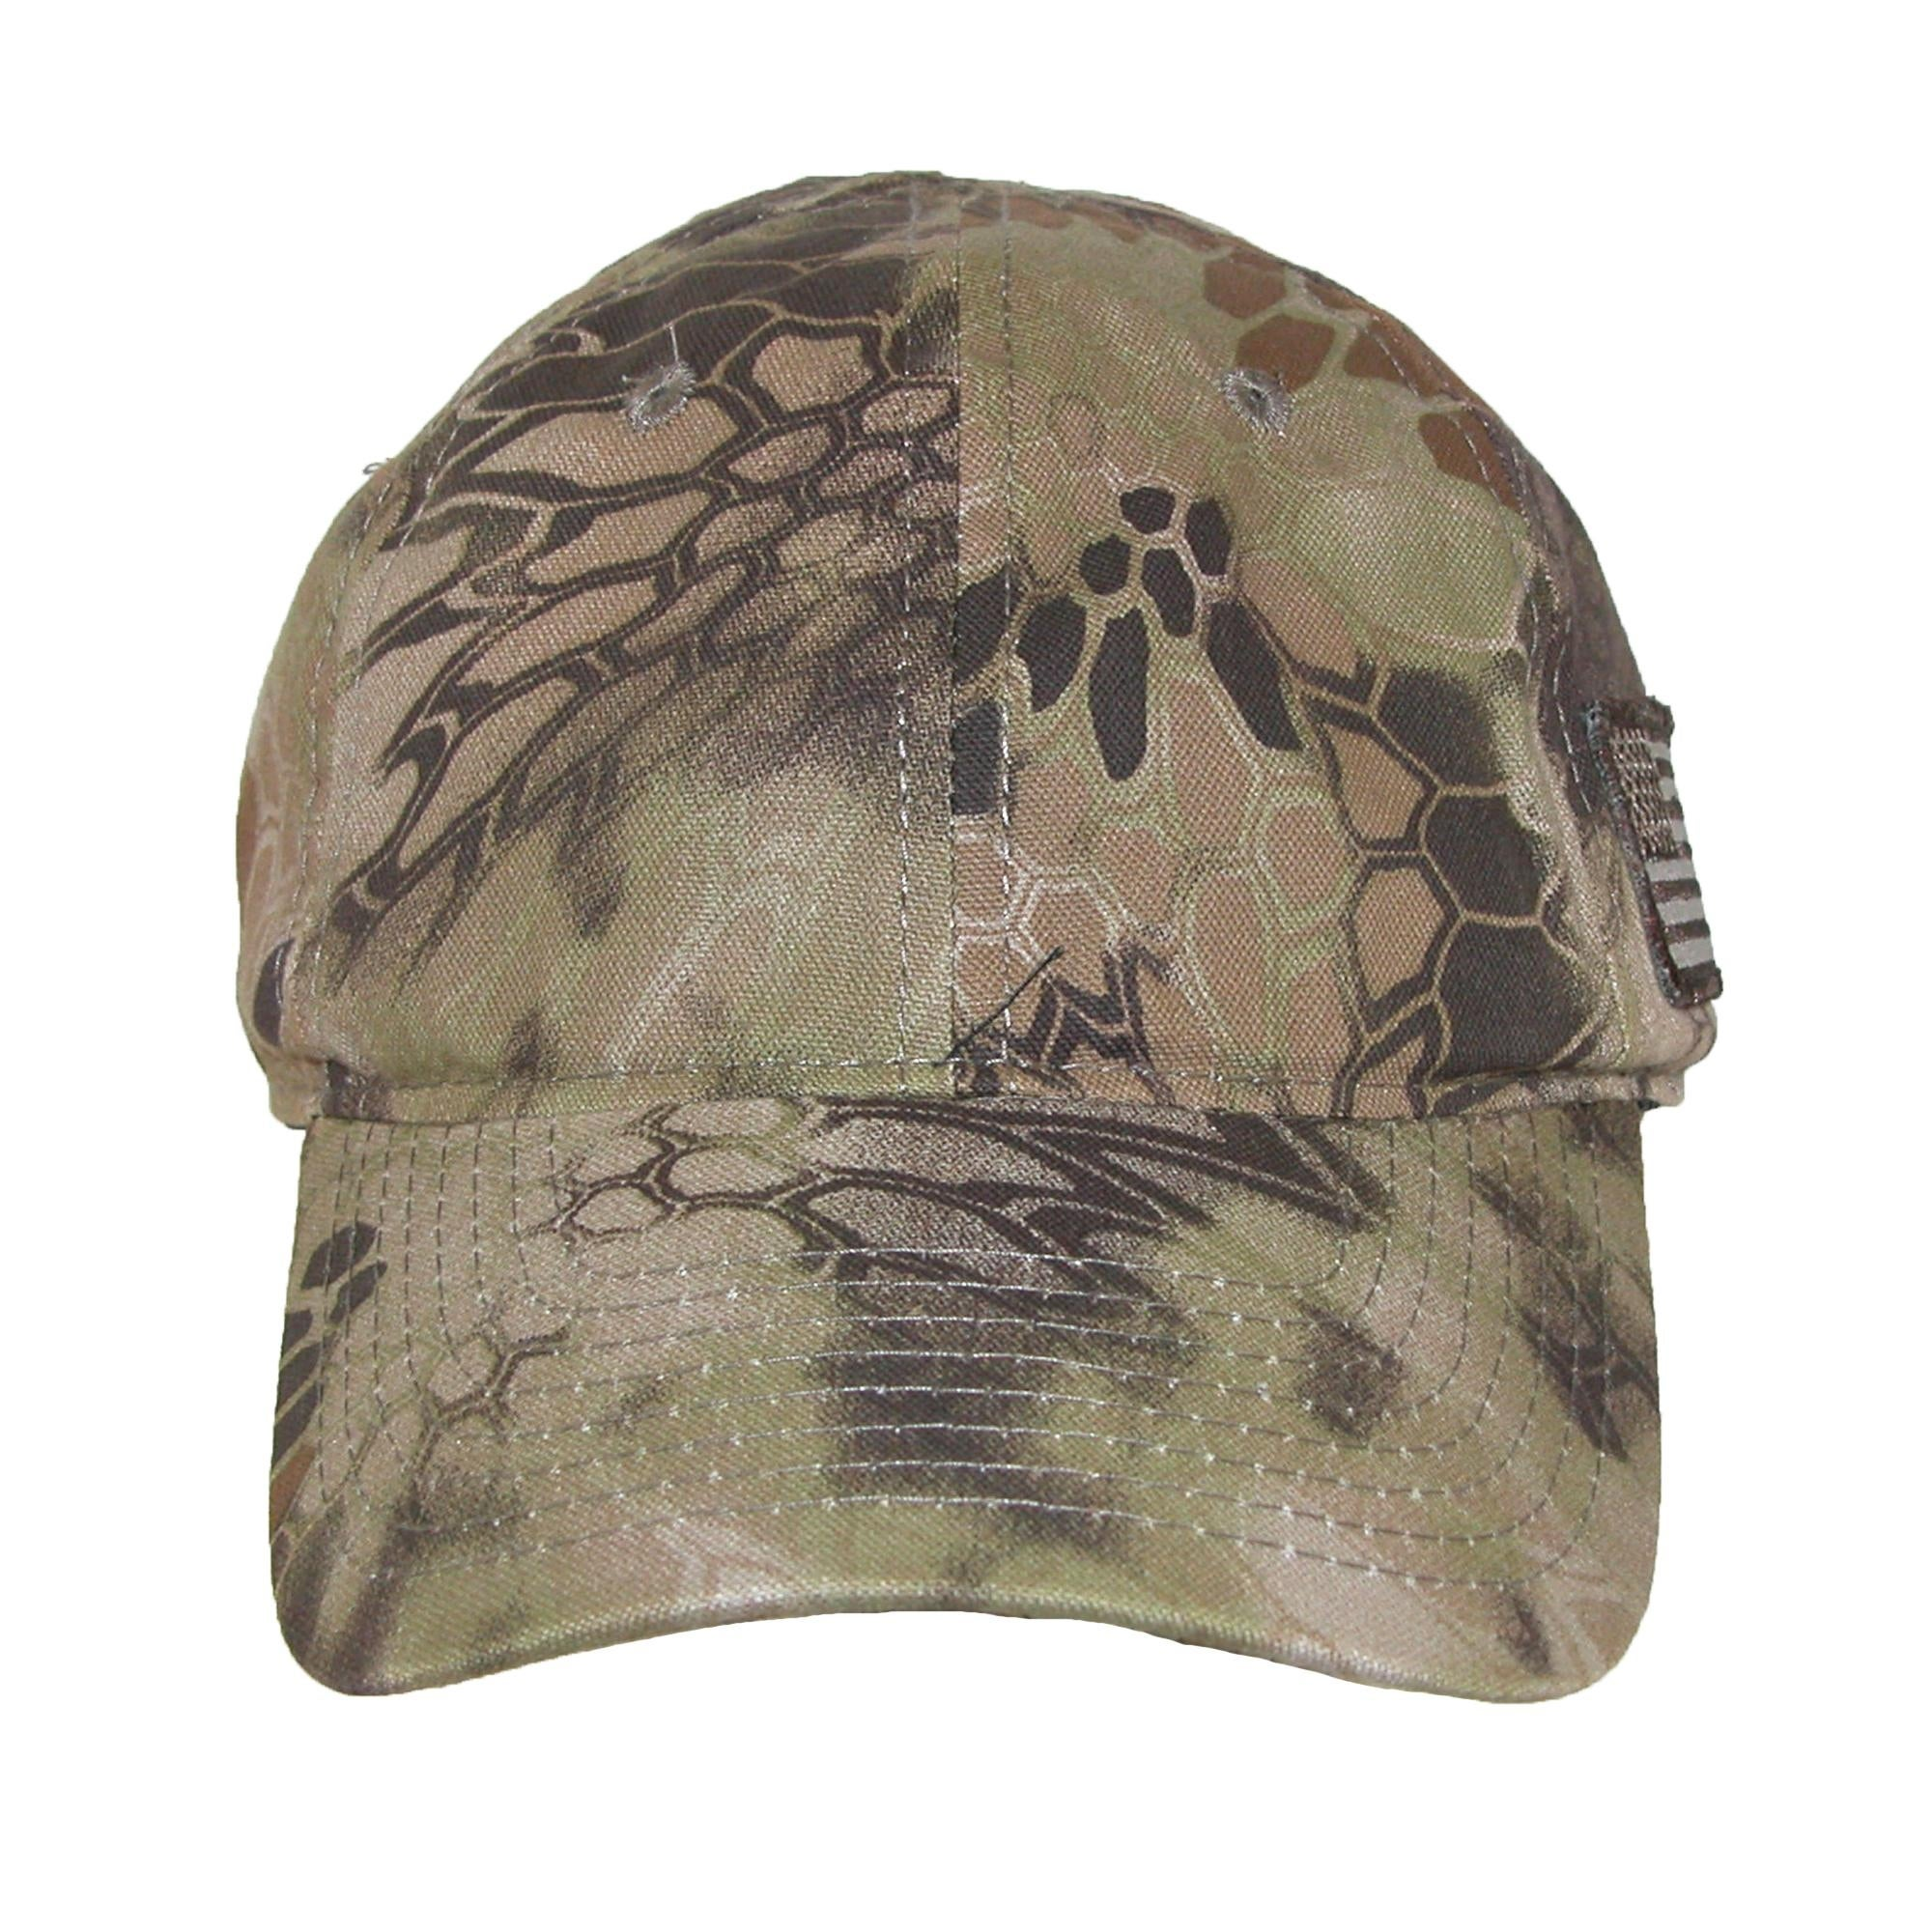 9b5fc01d3f0 Shop Kryptek Camouflage American Flag Baseball Cap - Free Shipping On  Orders Over  45 - Overstock - 14278707